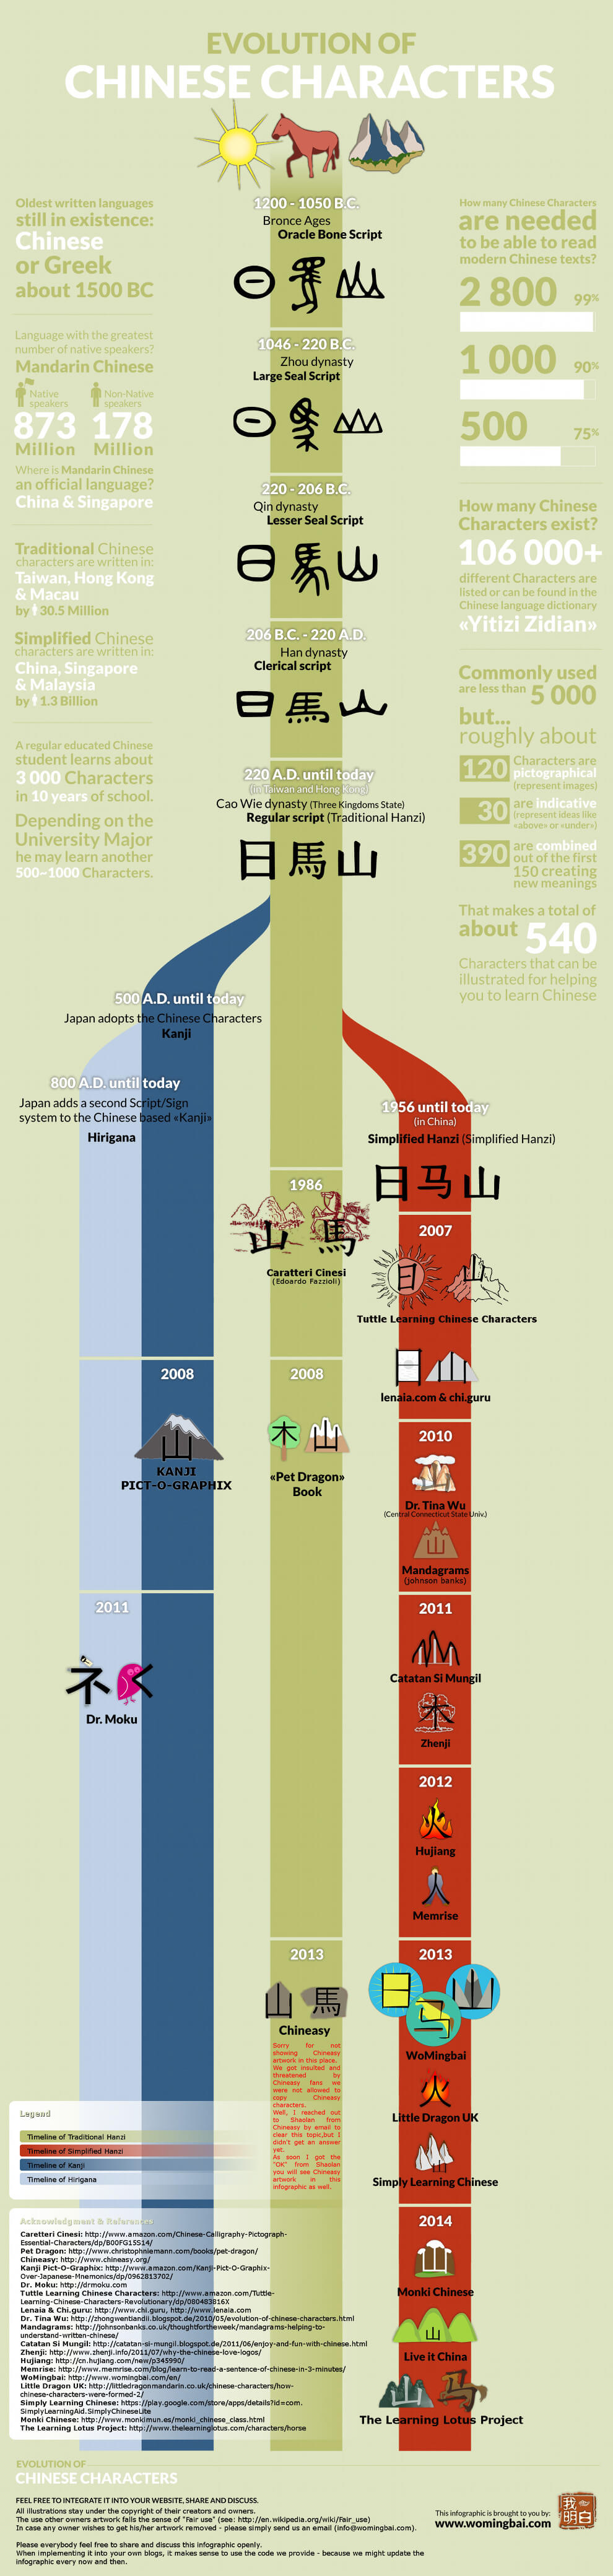 evolution-of-chinese-characters